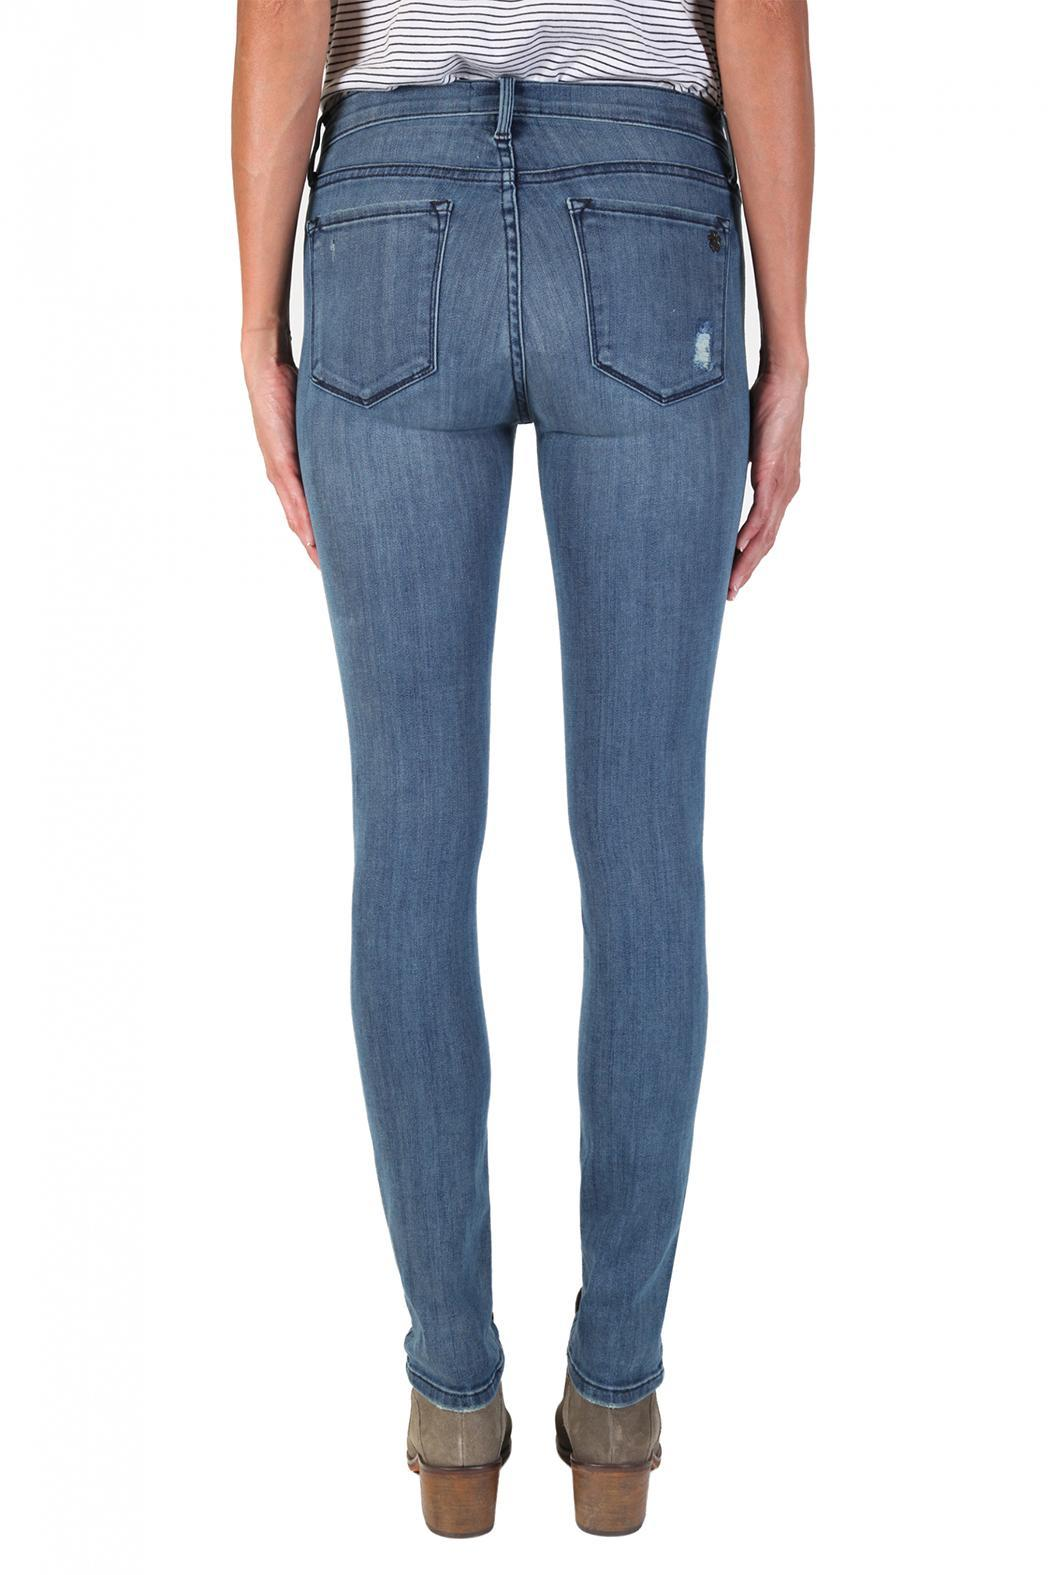 Black Orchid Denim Billie Zipper Skinnies - Side Cropped Image